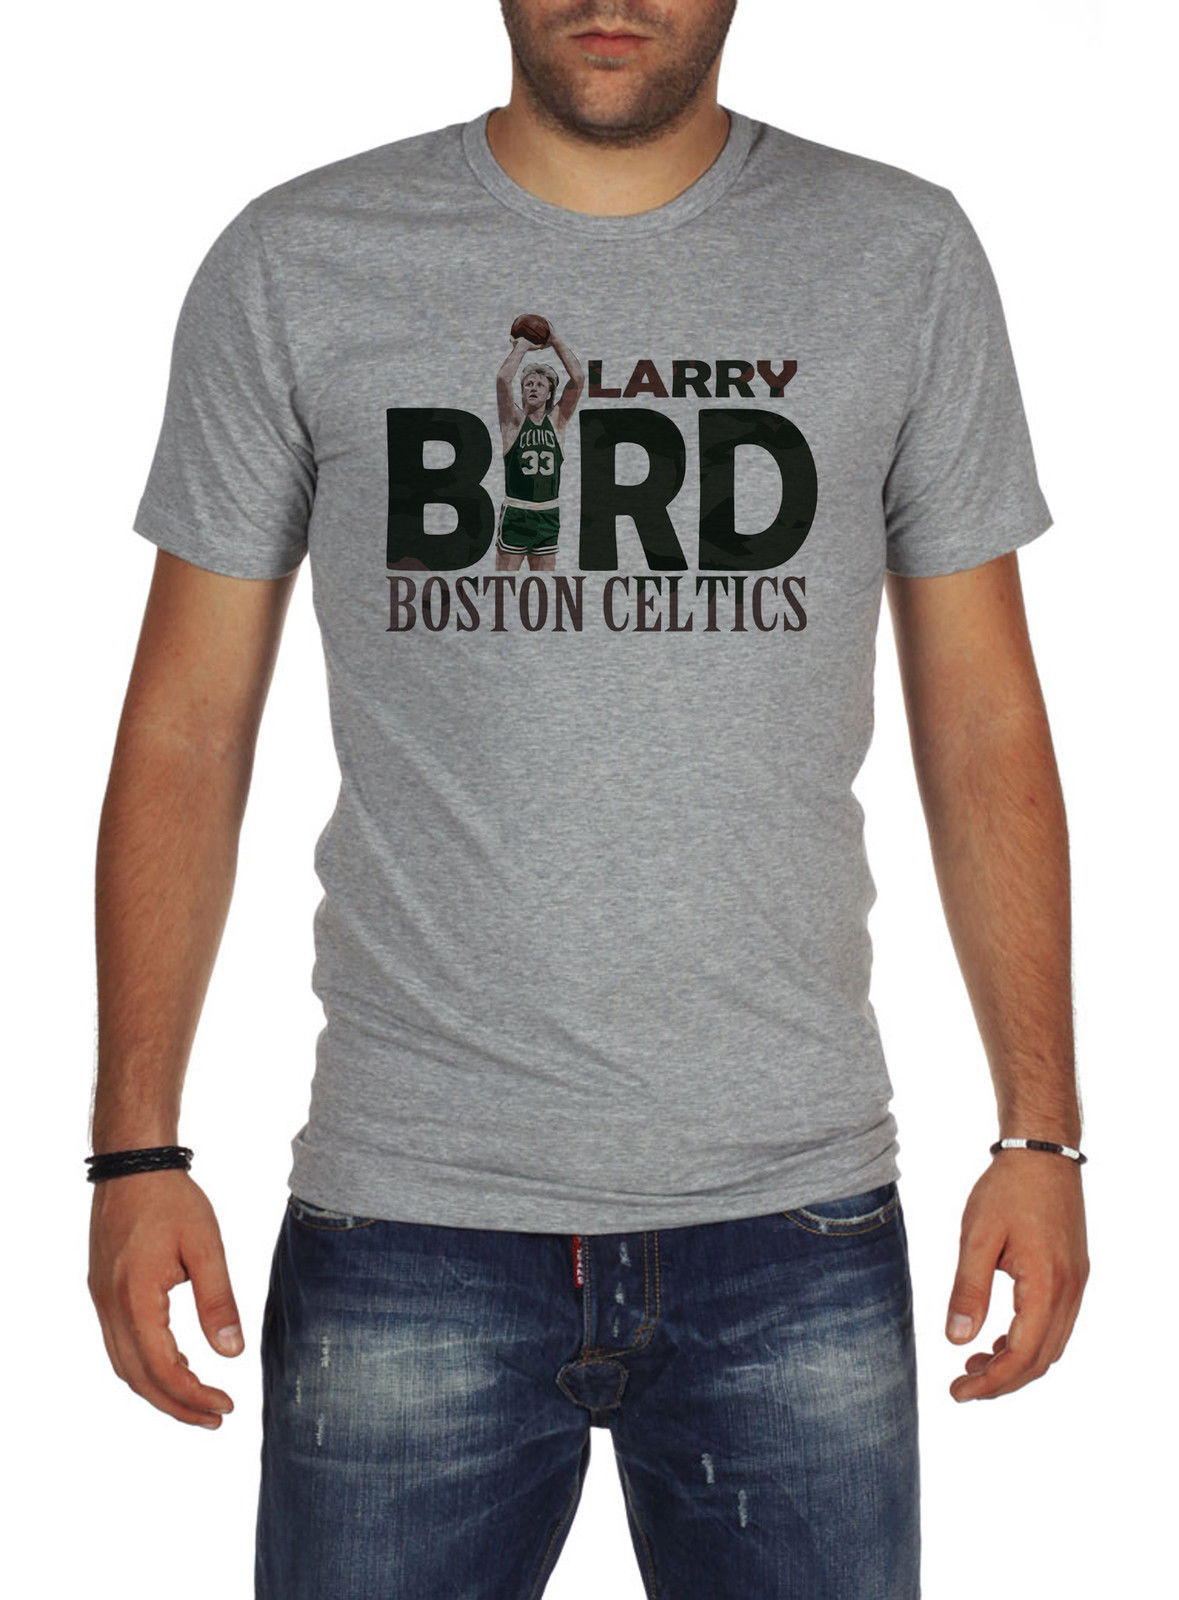 on sale d297d 19f7a US $8.49 15% OFF|Basketballer T Shirt Jersey Larry Bird The Legend M50  Custom Made Good Quality T Shirt Top Tee T Shirts Designs Best Selling-in  ...